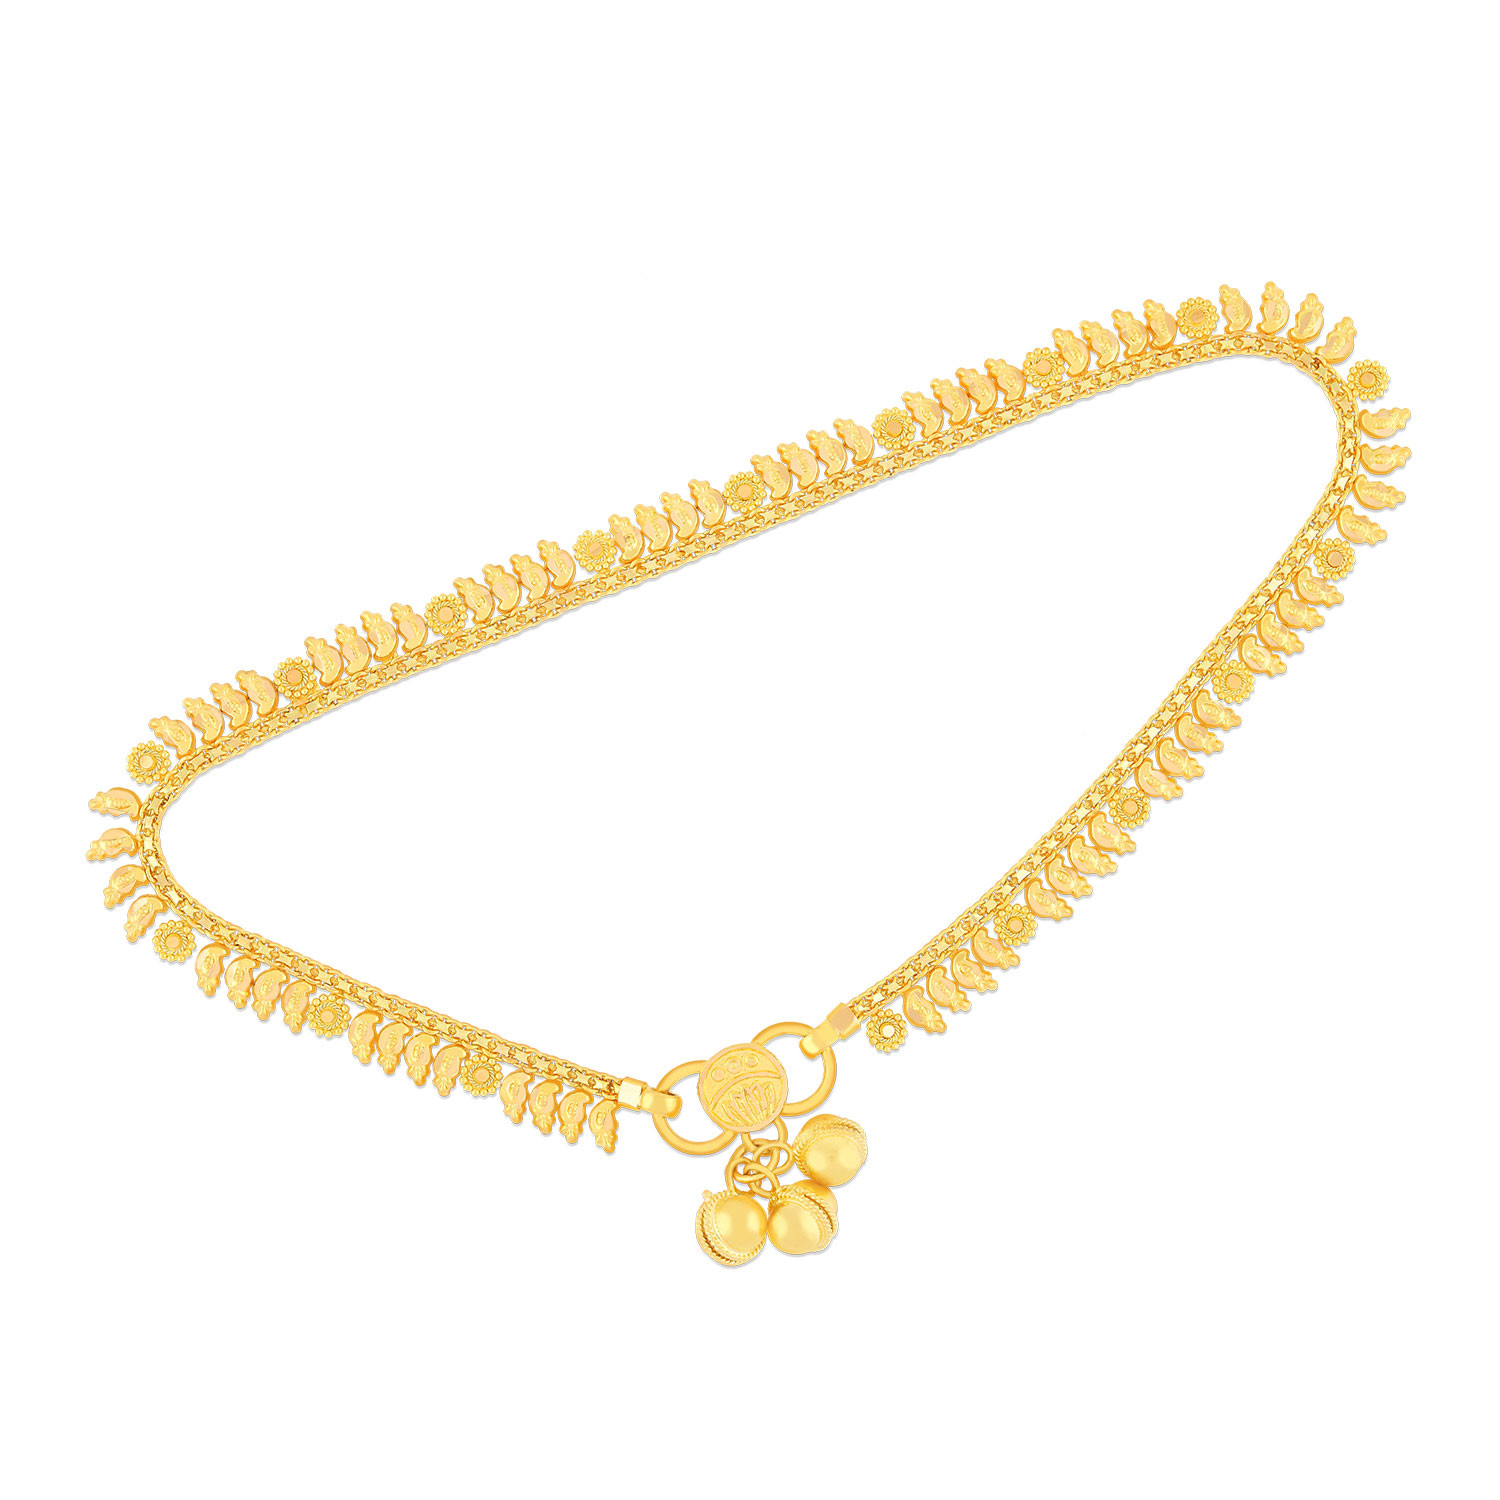 free ankletpayal payal copy designer of size products anklet gram gold one guaranteed plated griiham